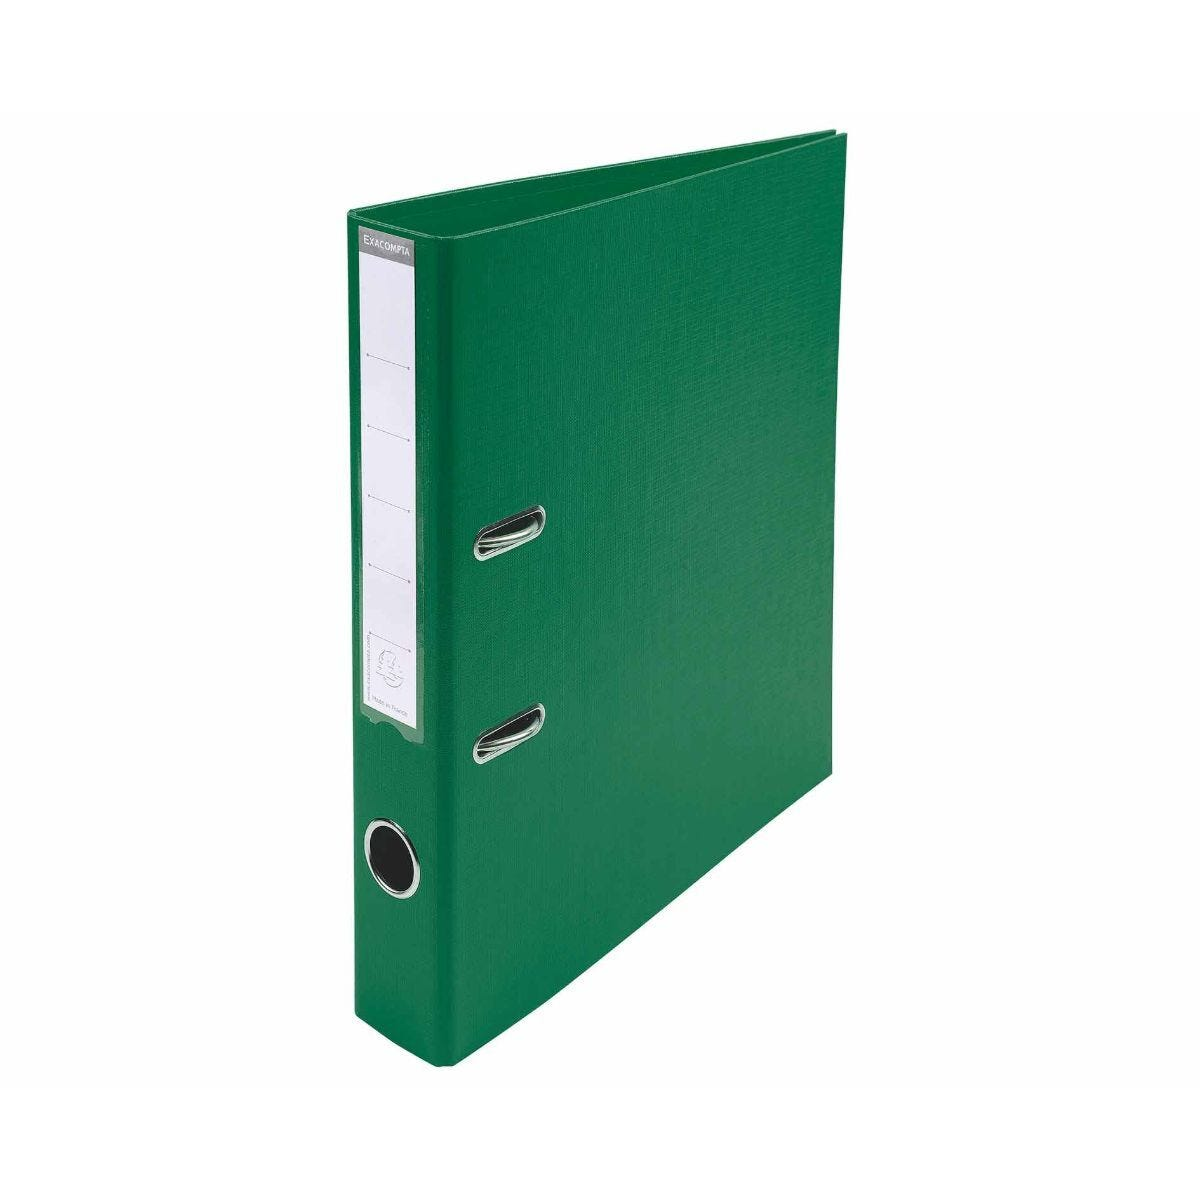 Exacompta PremTouch A4 Lever Arch File 50mm Pack of 10 Dark Green